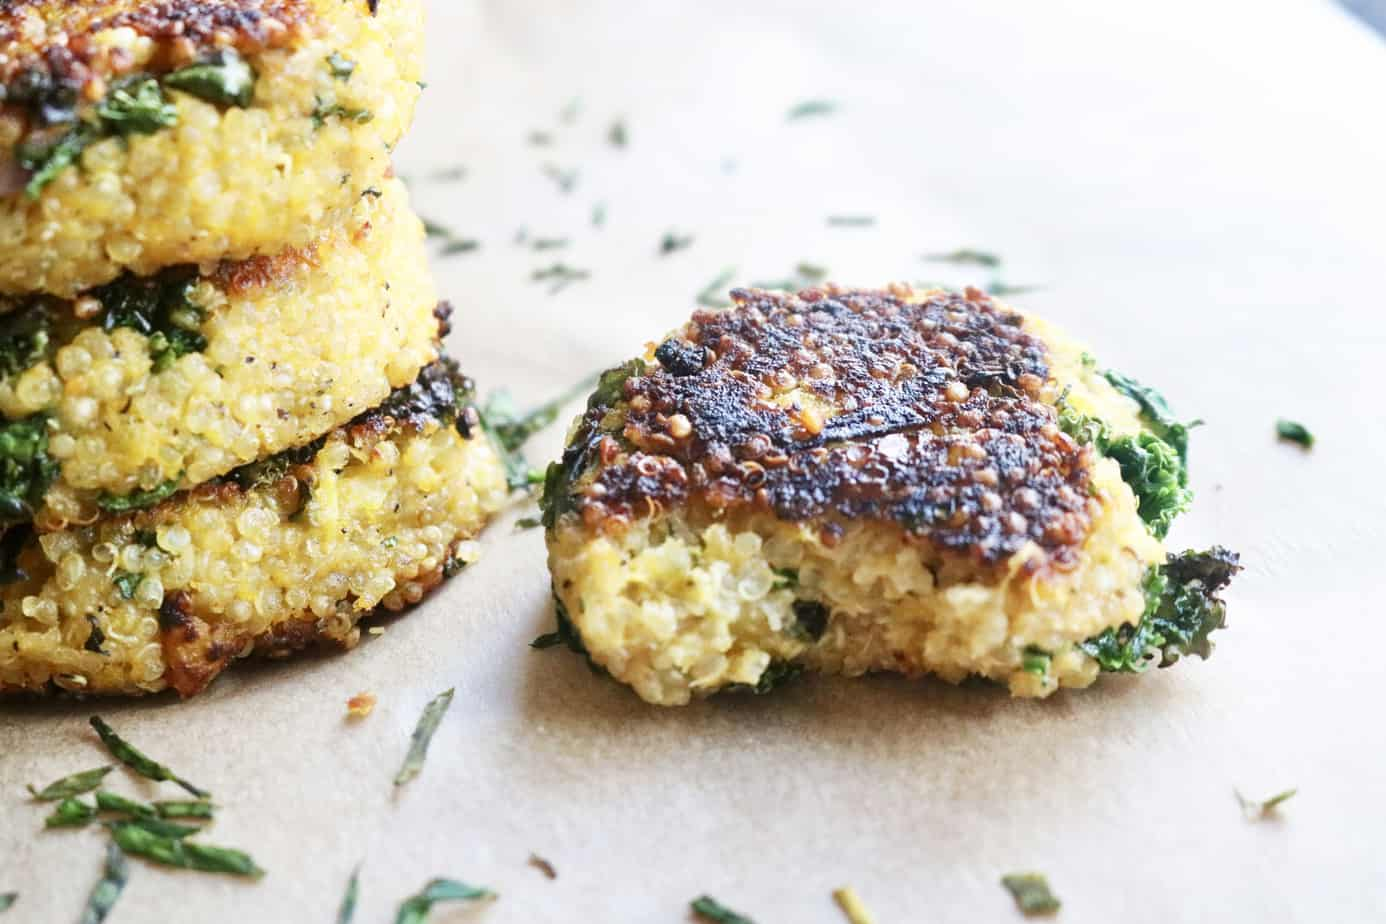 Quinoa patties with a bite